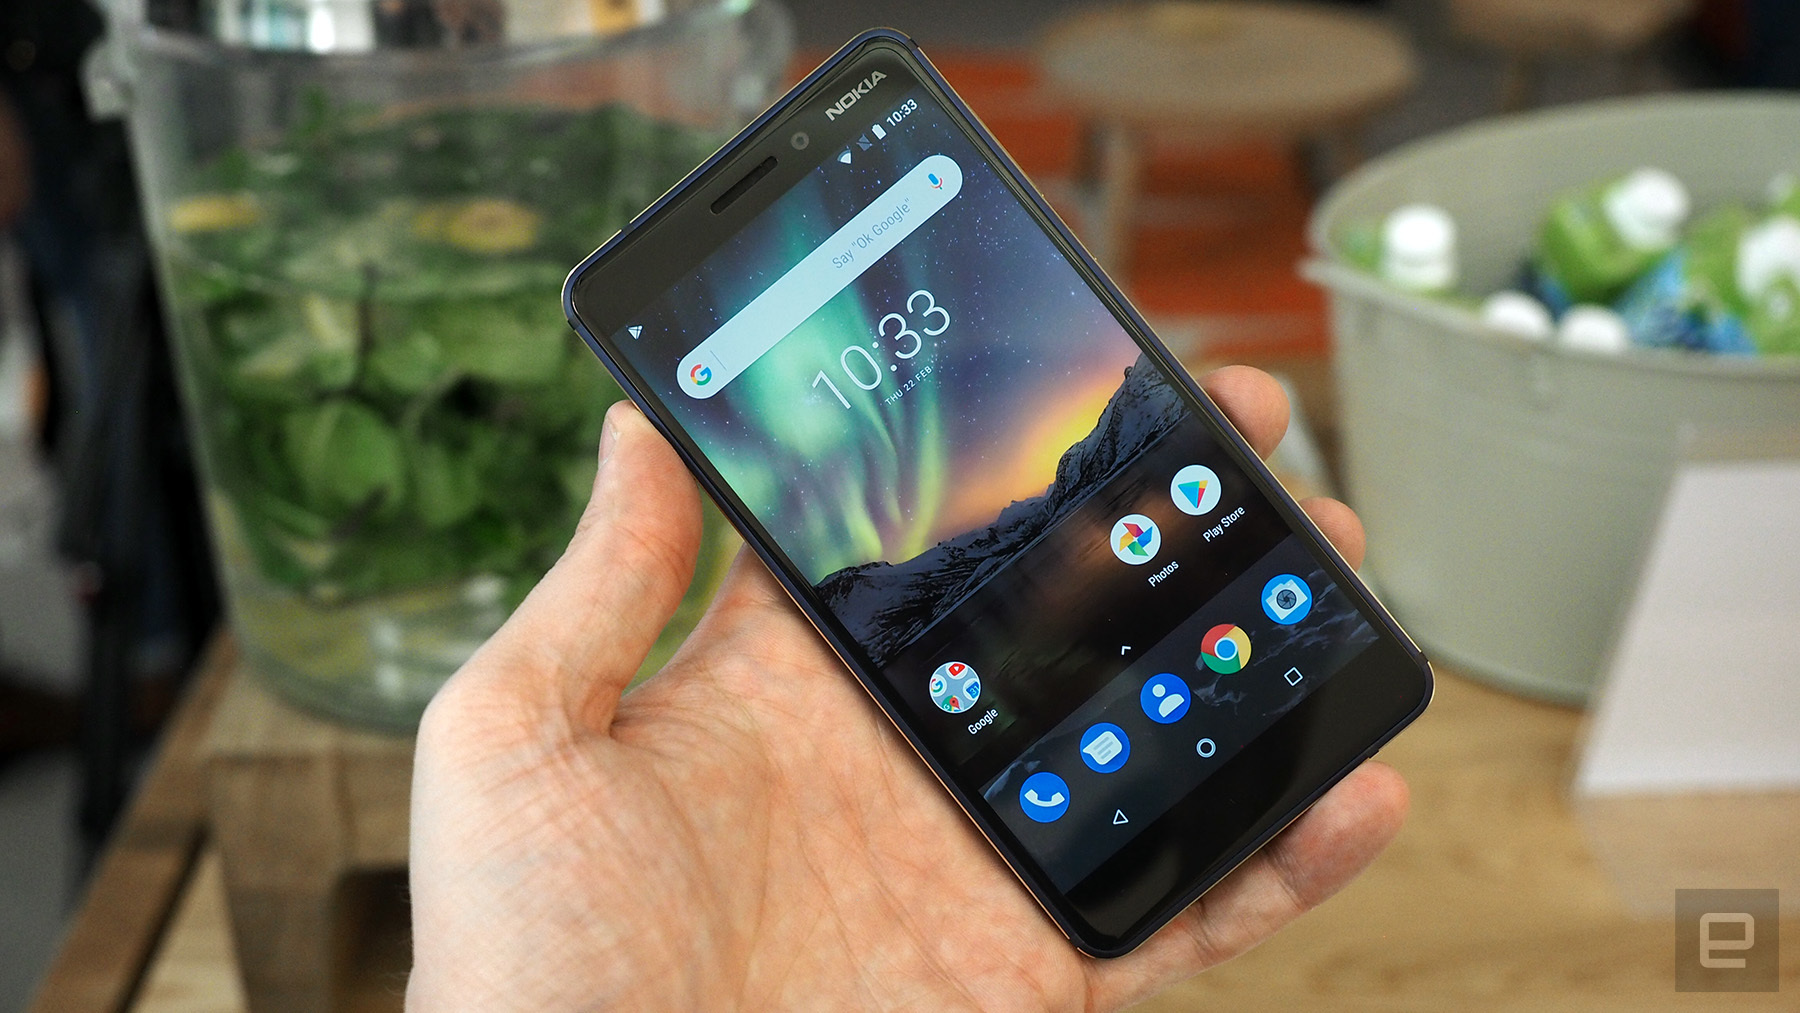 photo image The upgraded Nokia 6 is available for purchase in the US and UK